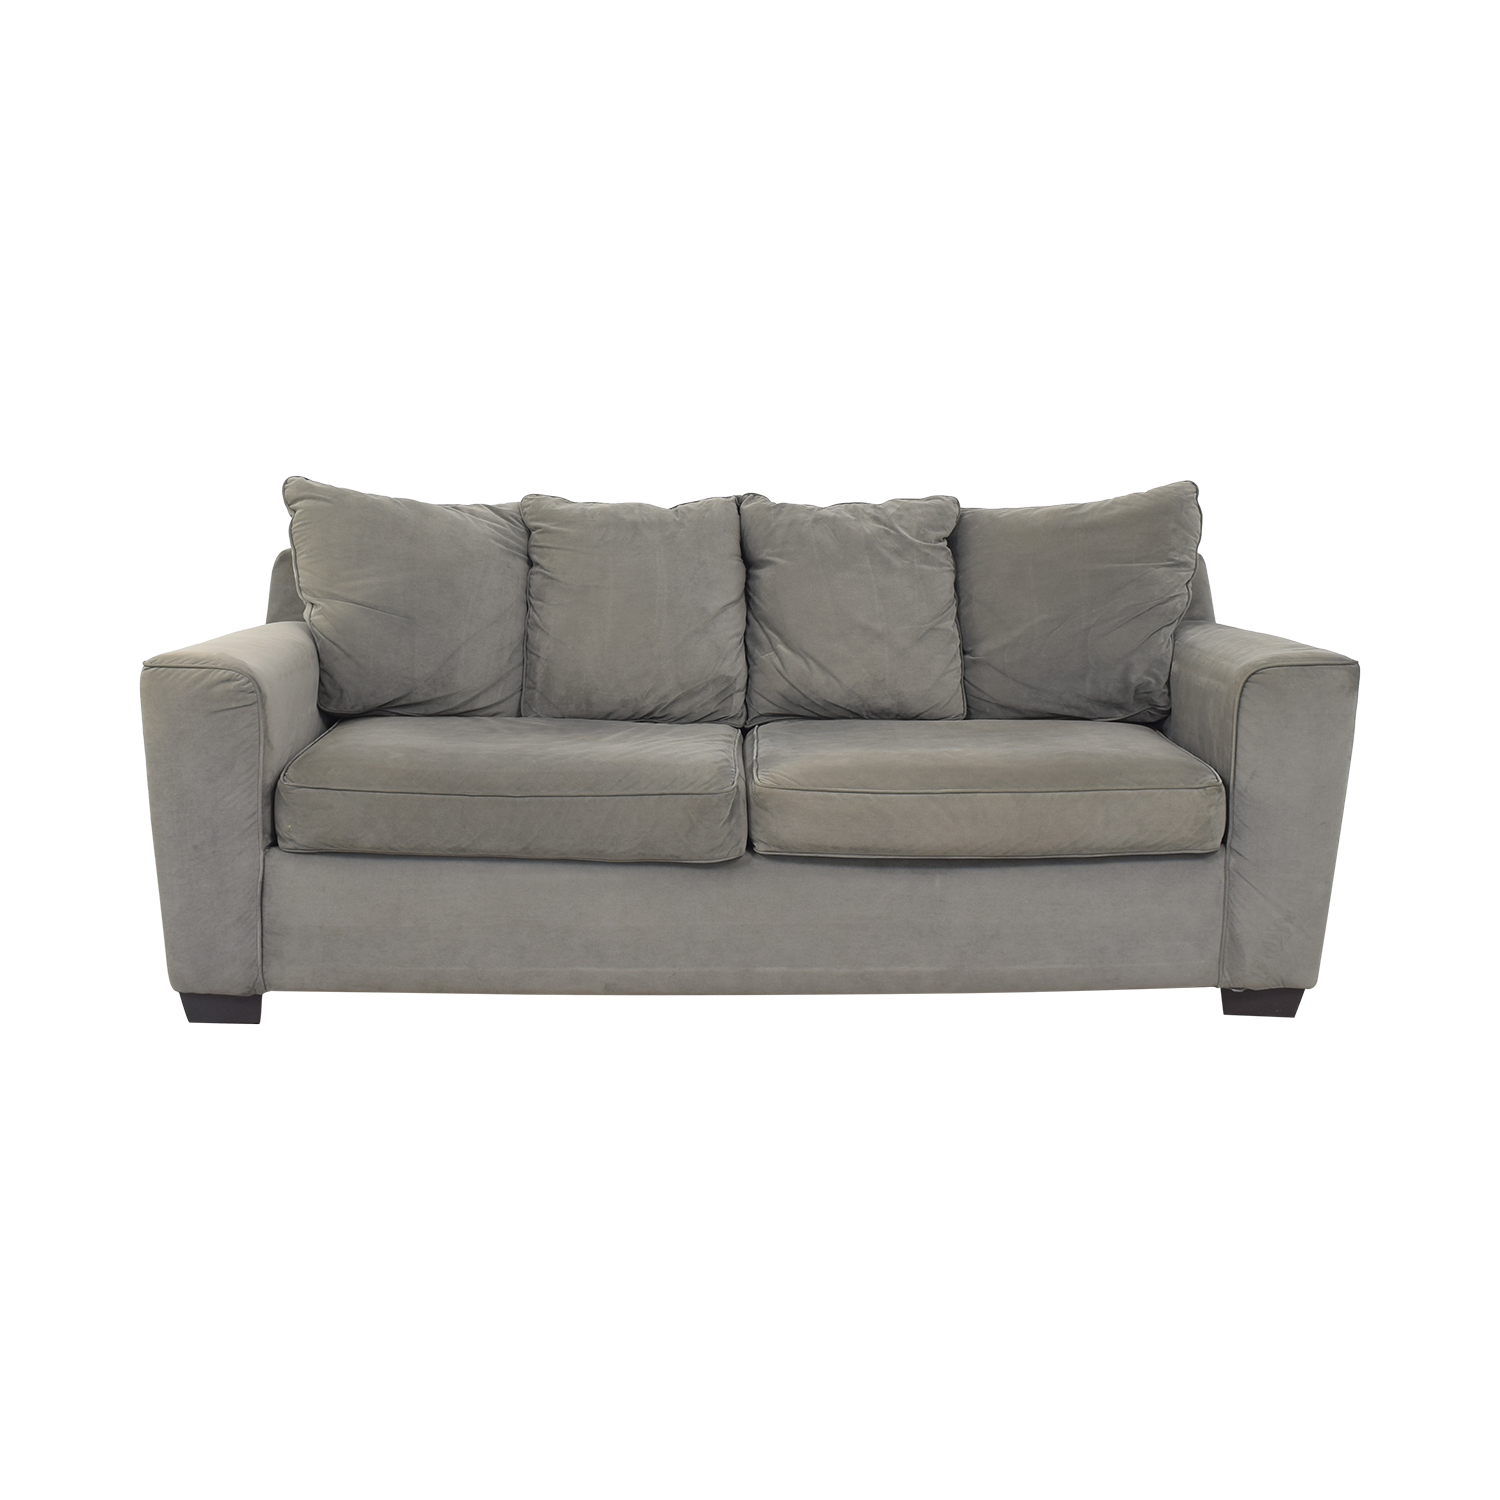 Jennifer Furniture Jennifer Furniture Sofa nj